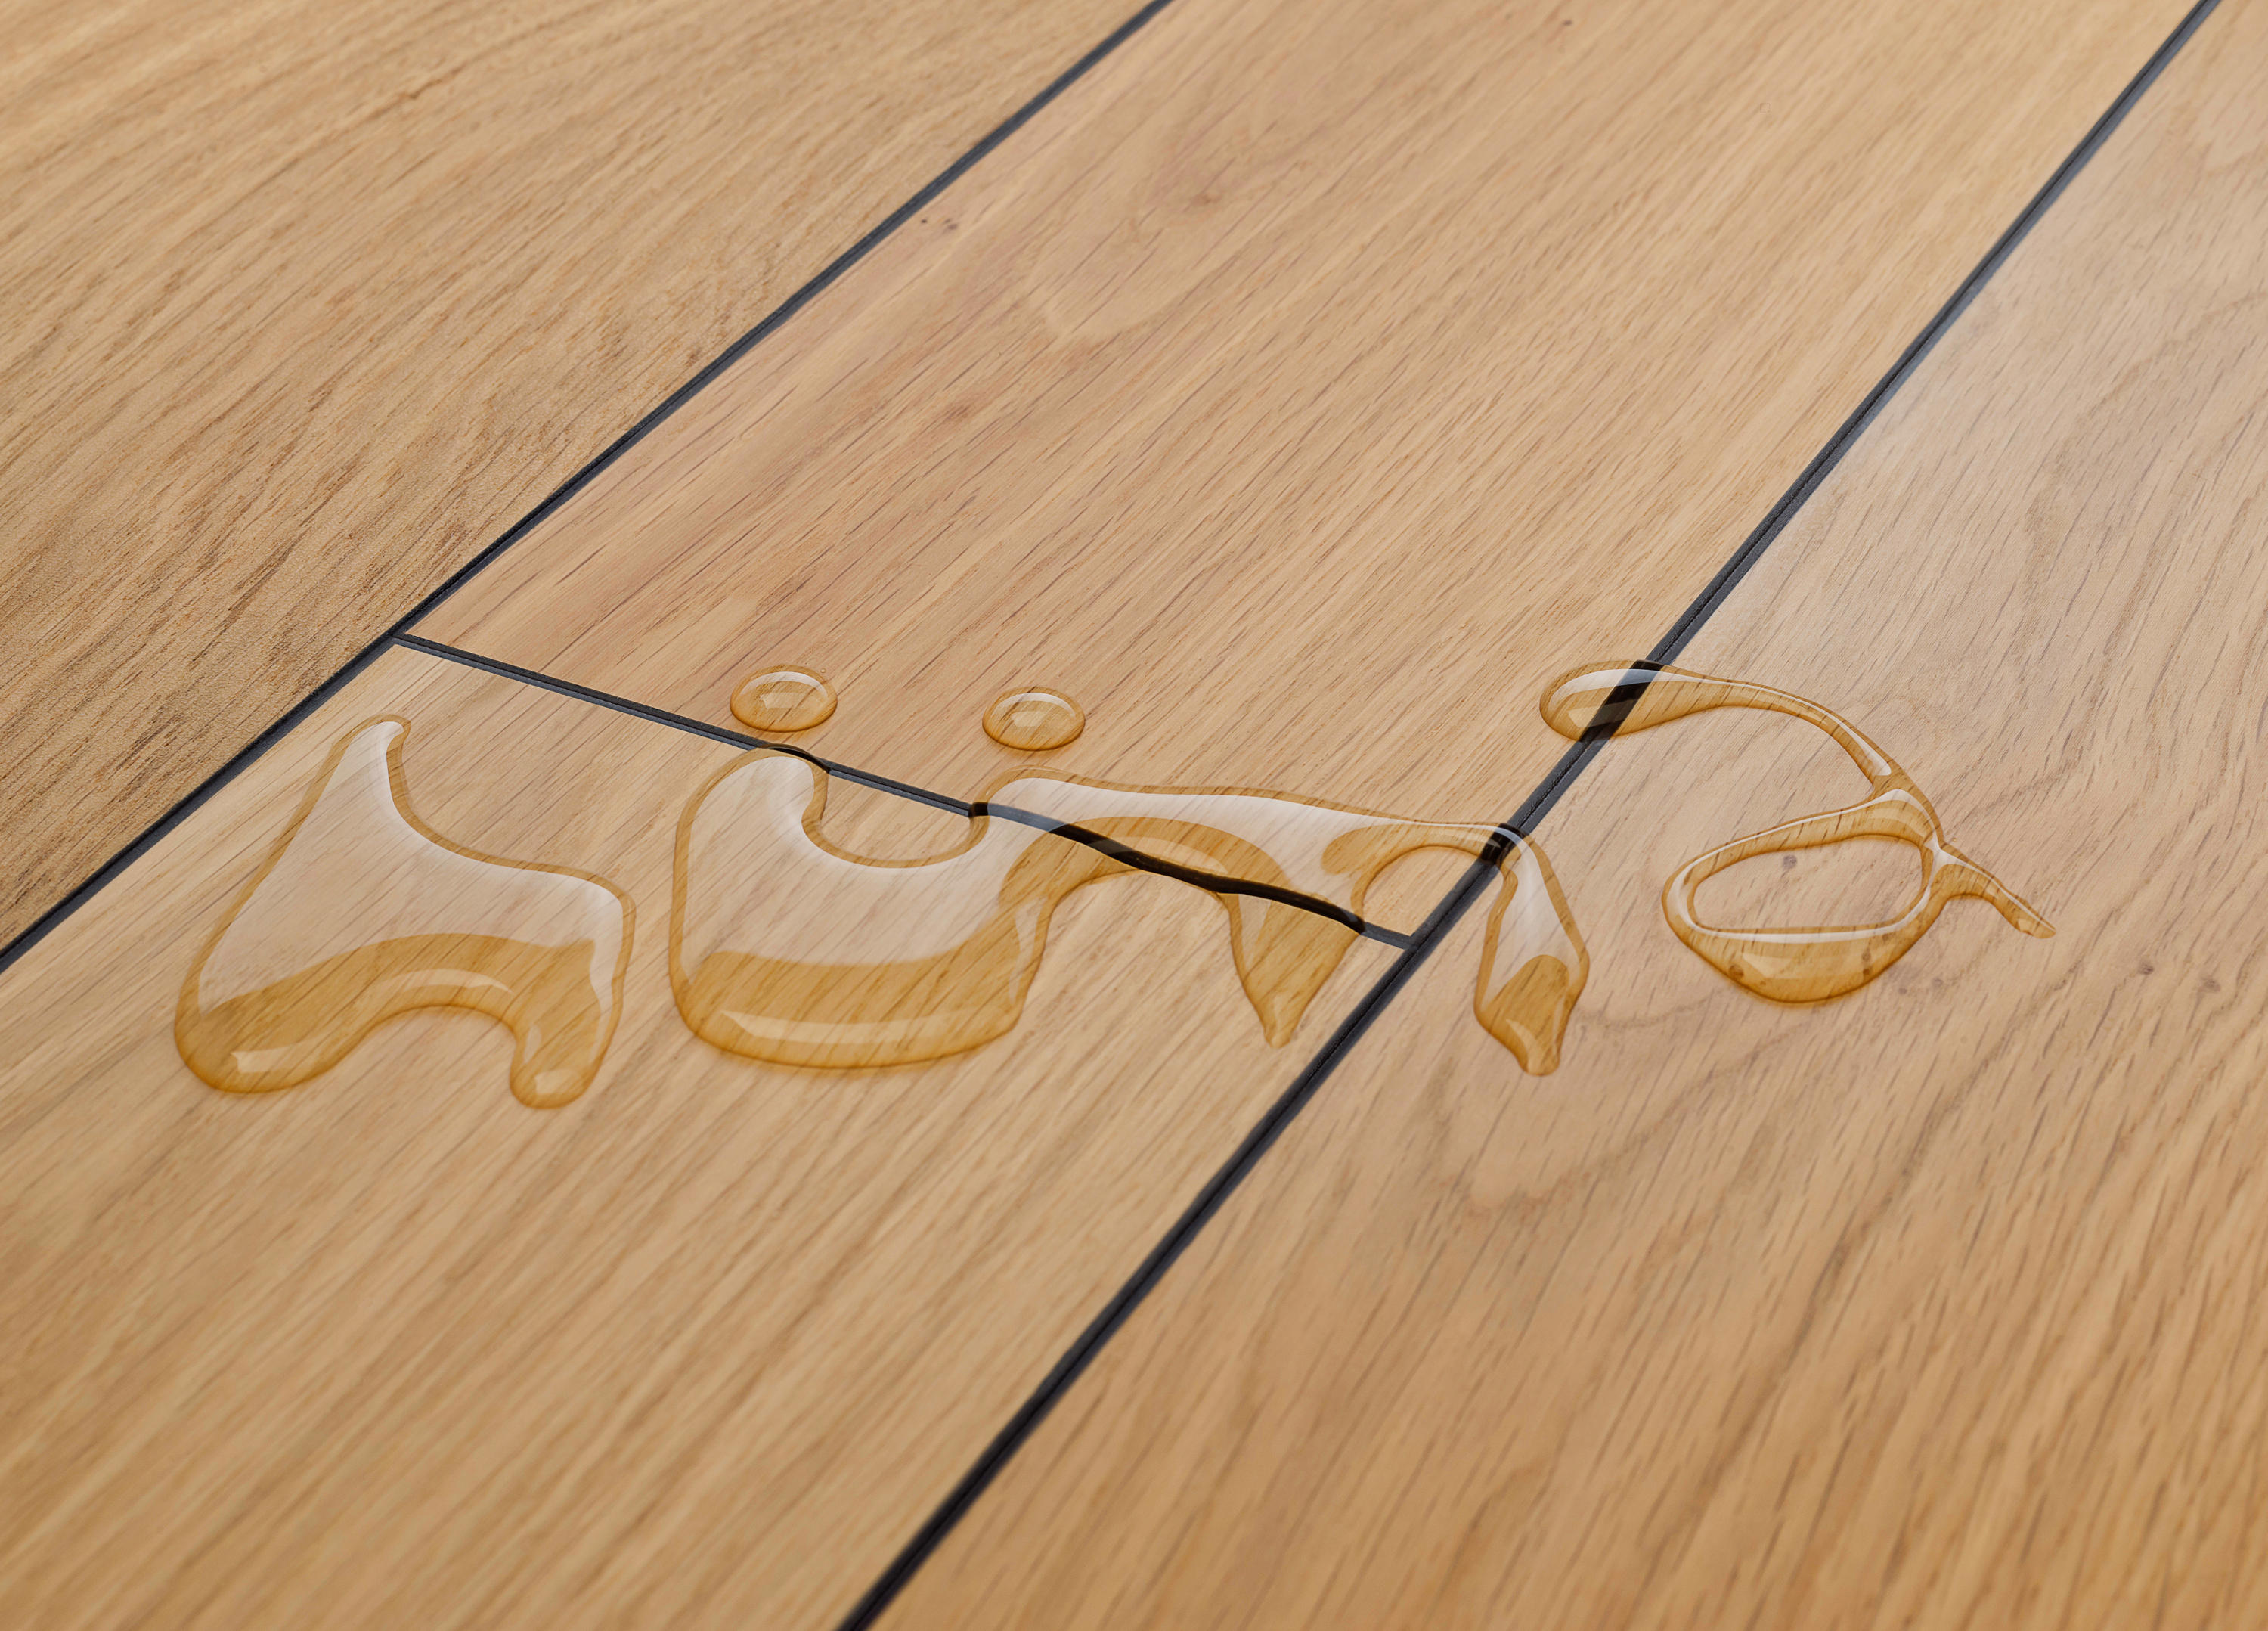 Hydro parquet nature wood flooring from hüma architonic